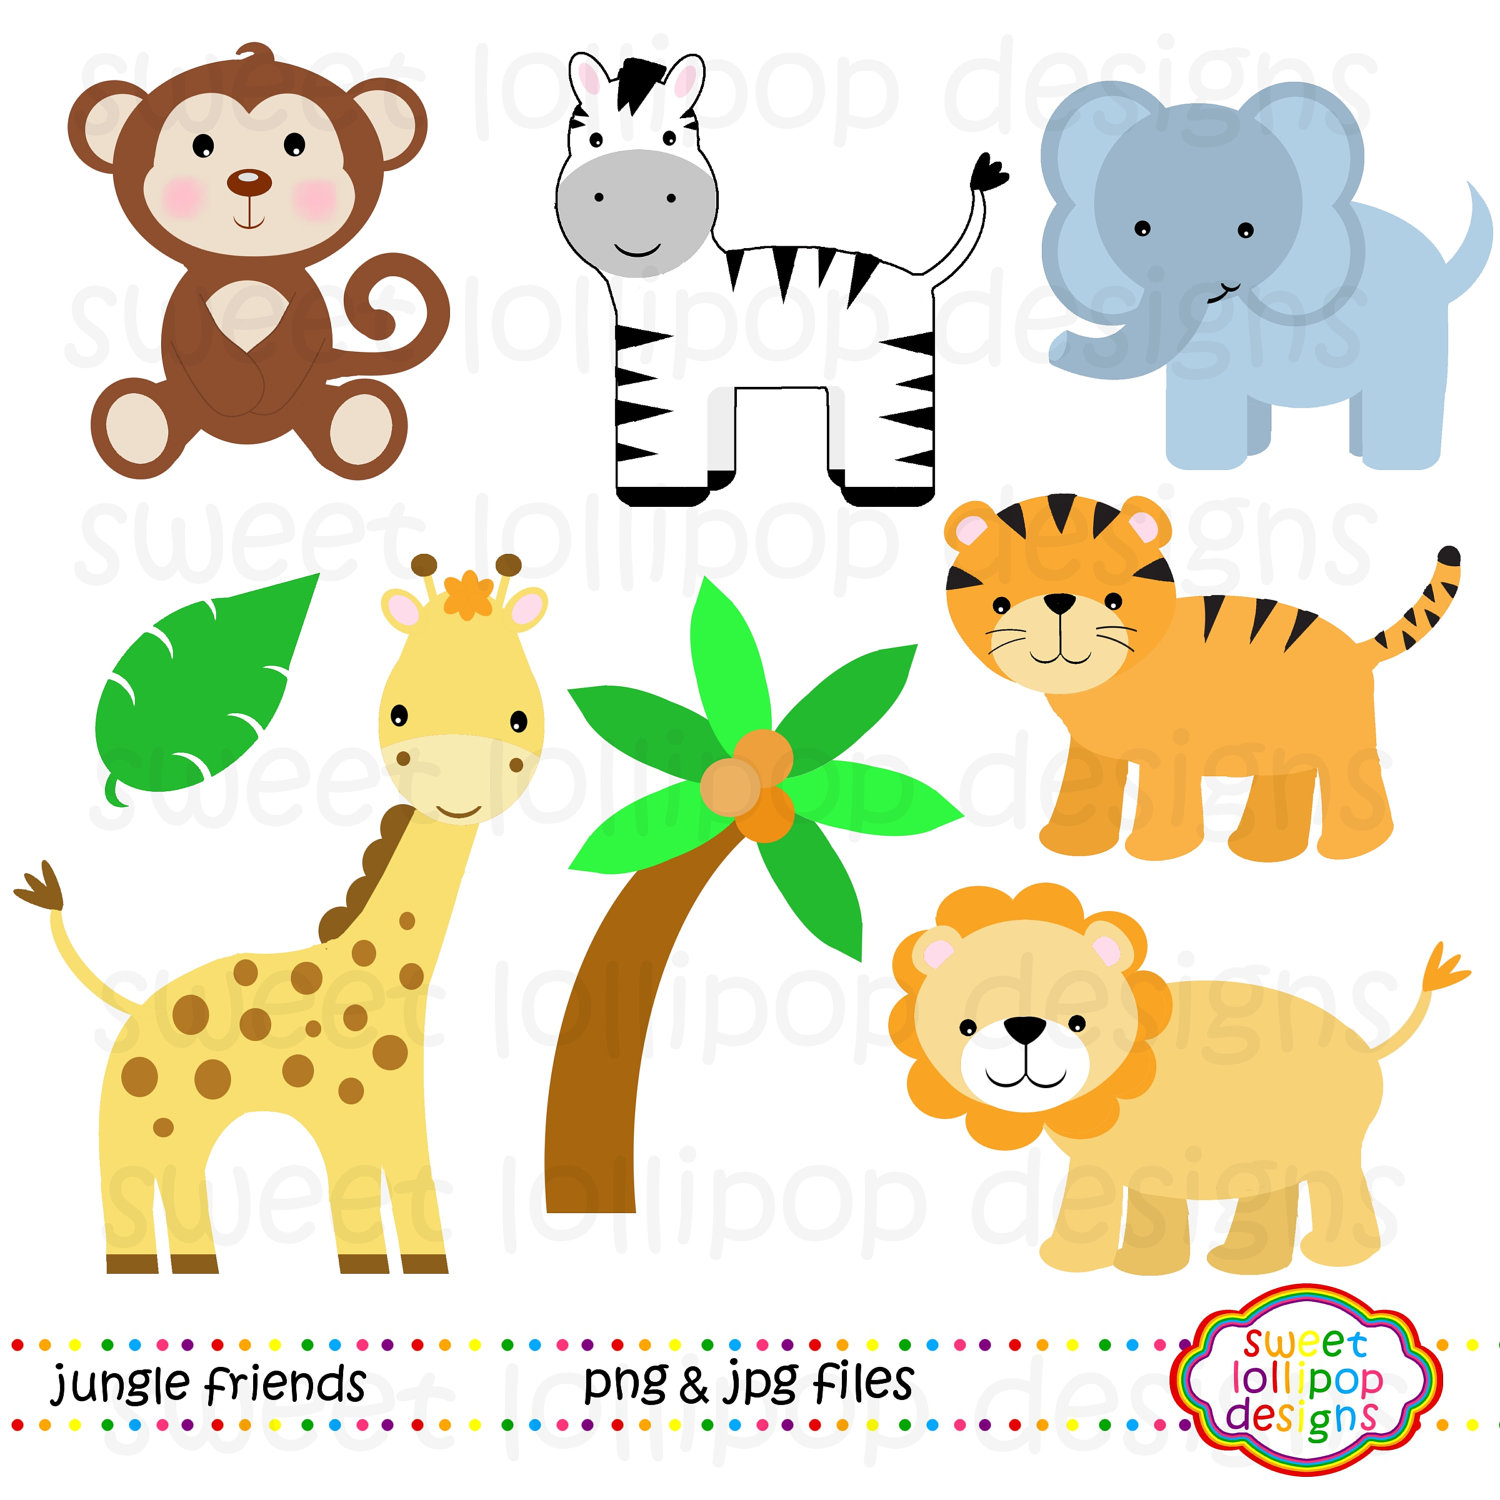 Free PNG Zoo Animals - 41596